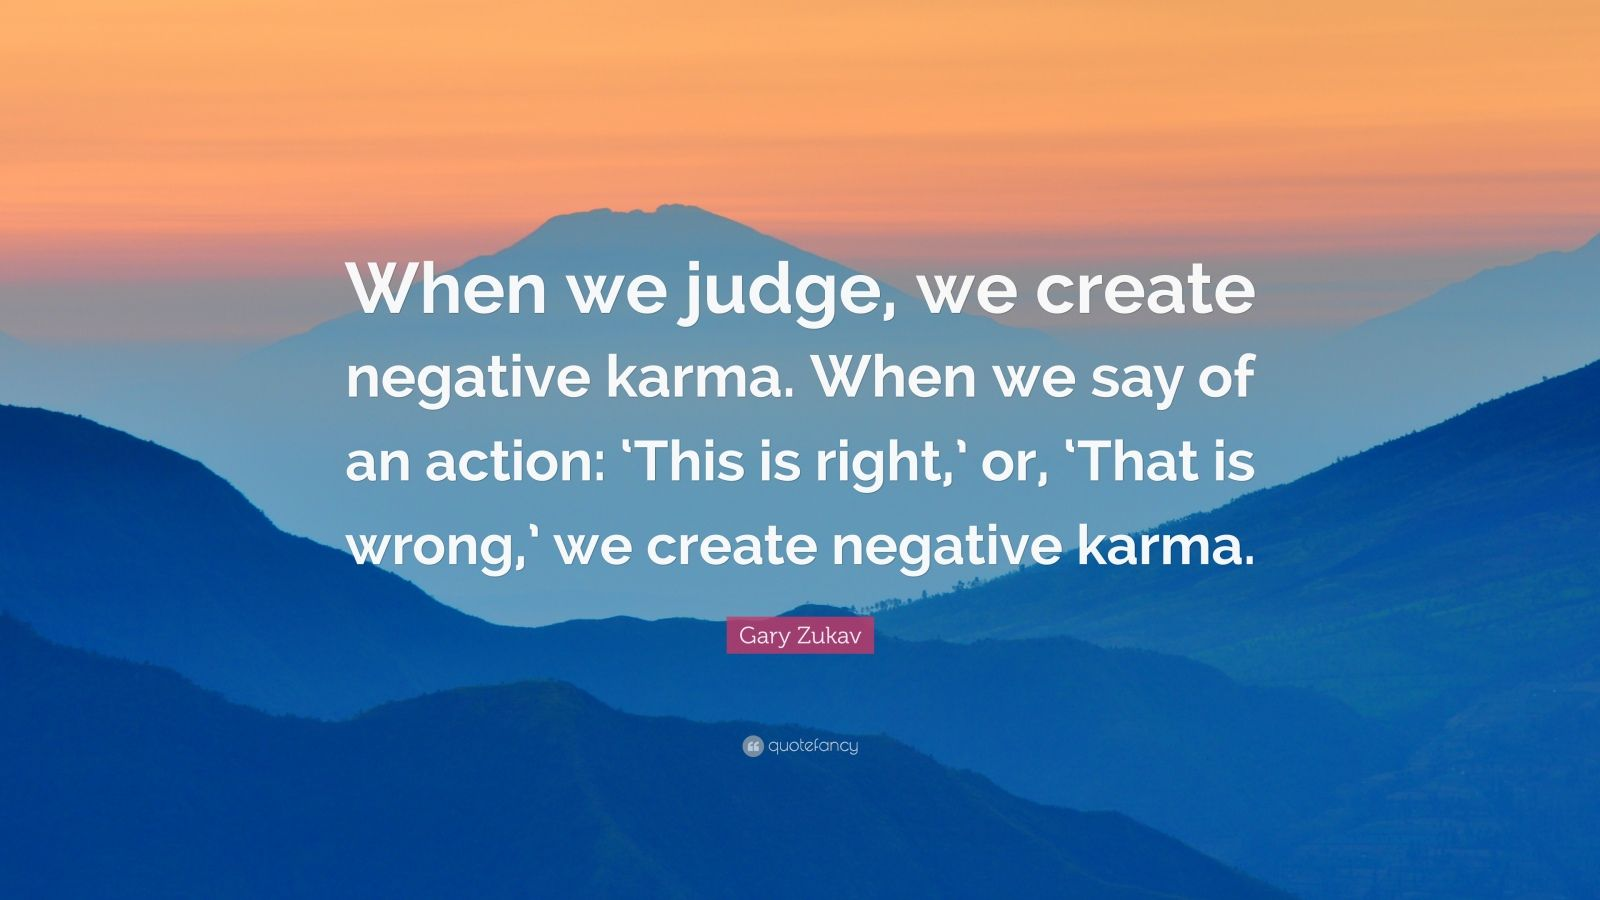 """Gary Zukav Quote: """"When we judge, we create negative karma. When we say of an action: 'This is right,' or, 'That is wrong,' we create negative karma."""""""